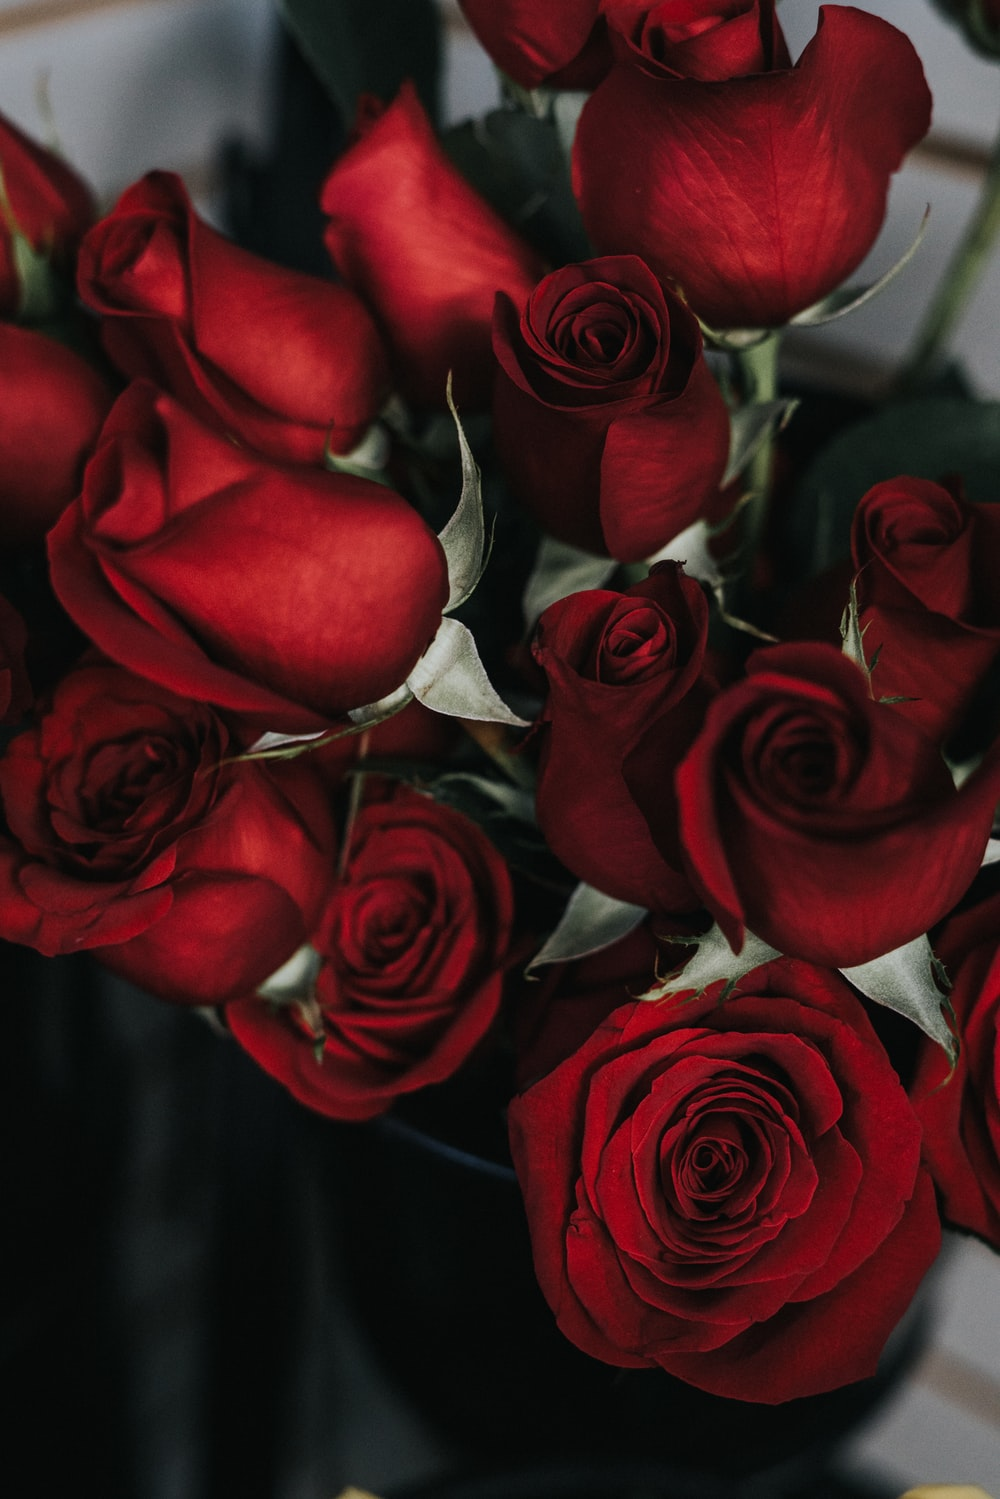 27 Roses Images Download Free Images On Unsplash